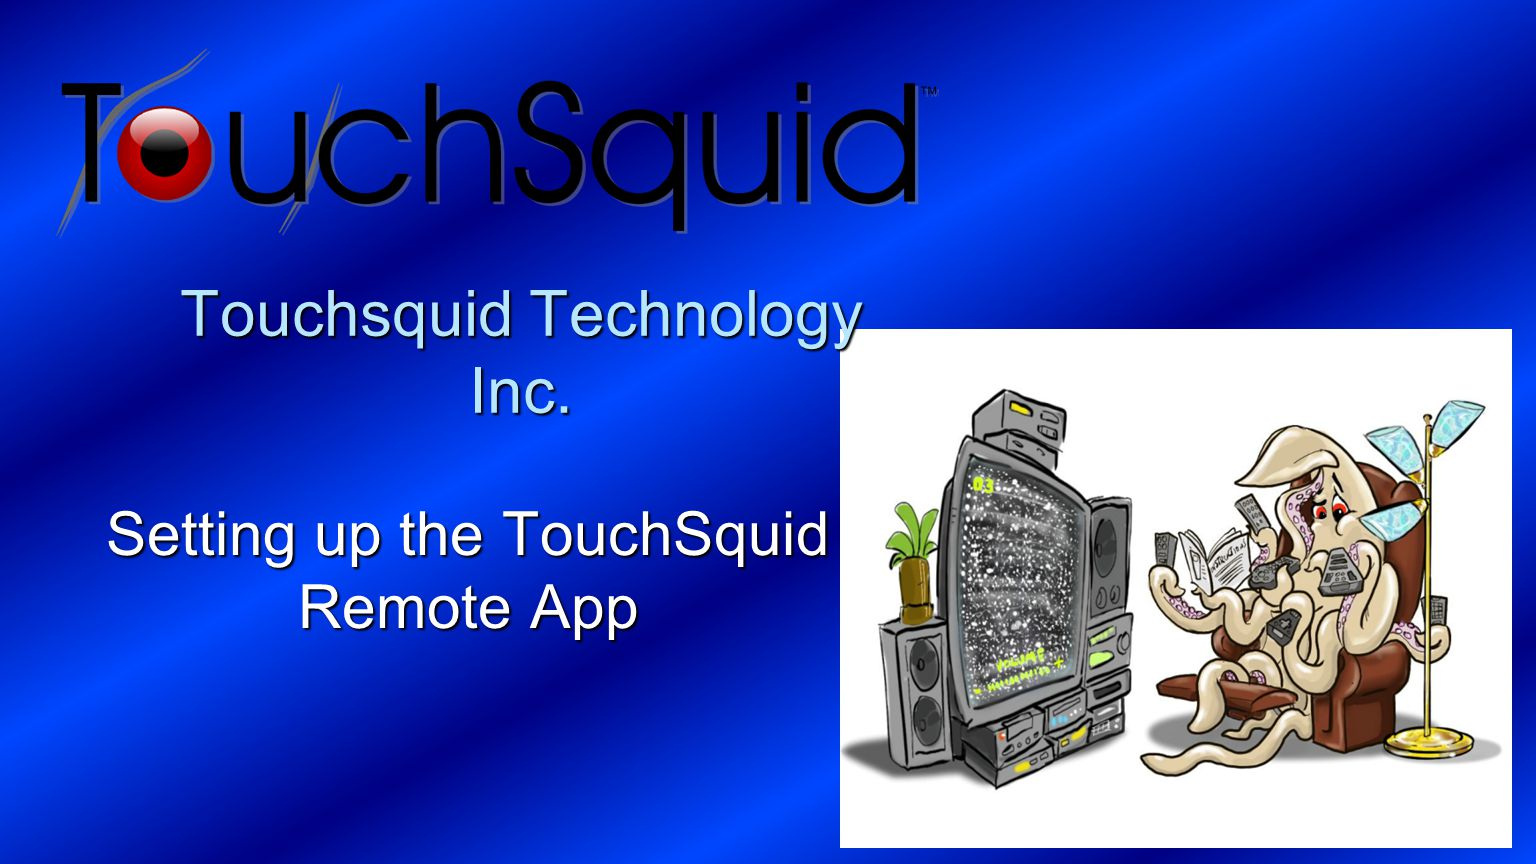 Touchsquid Technology Inc. Setting up the TouchSquid Remote App